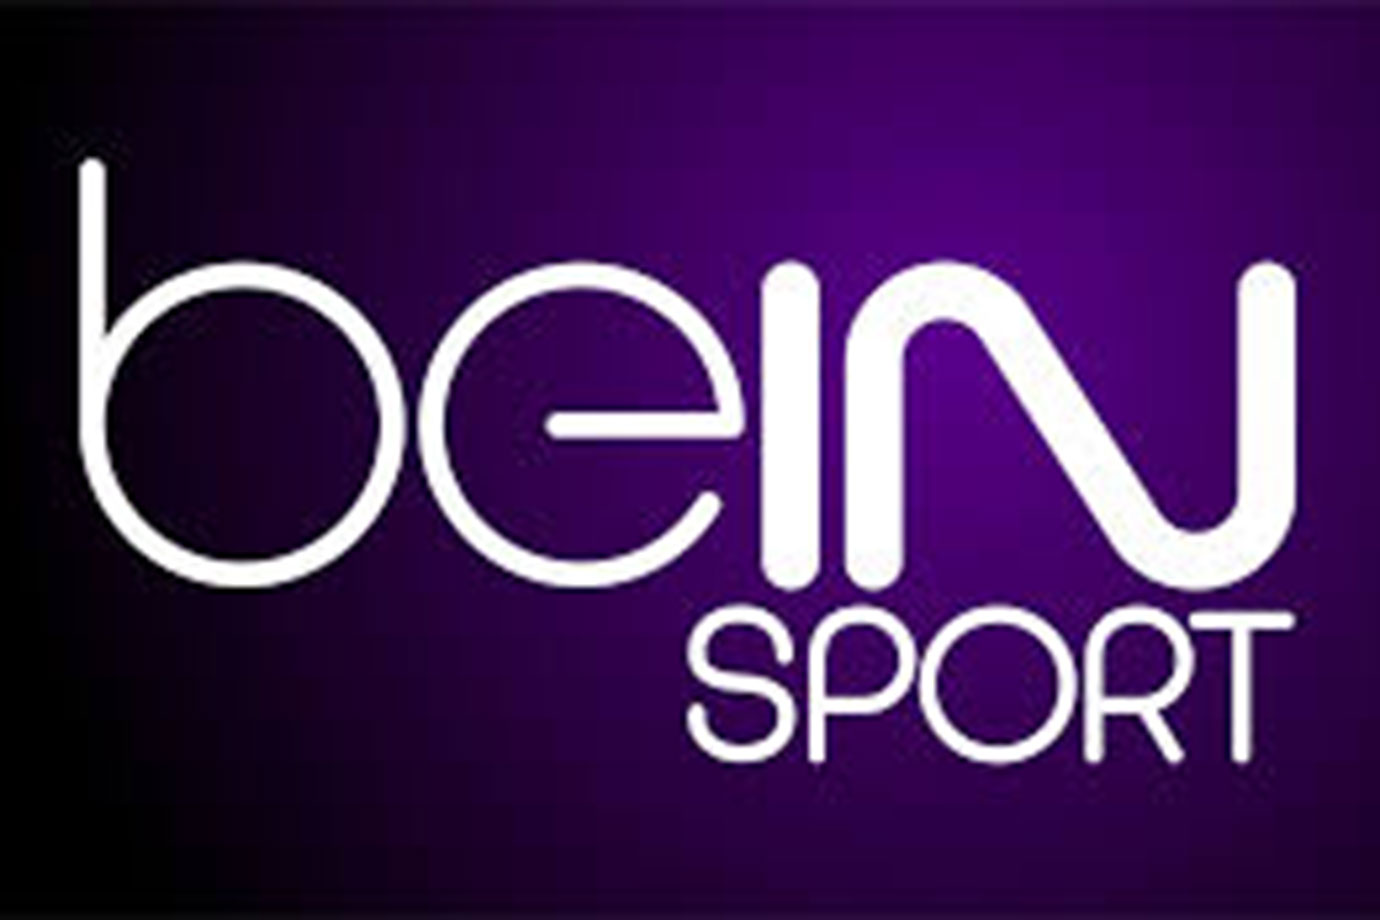 bein sports channel blocked on uae tv?